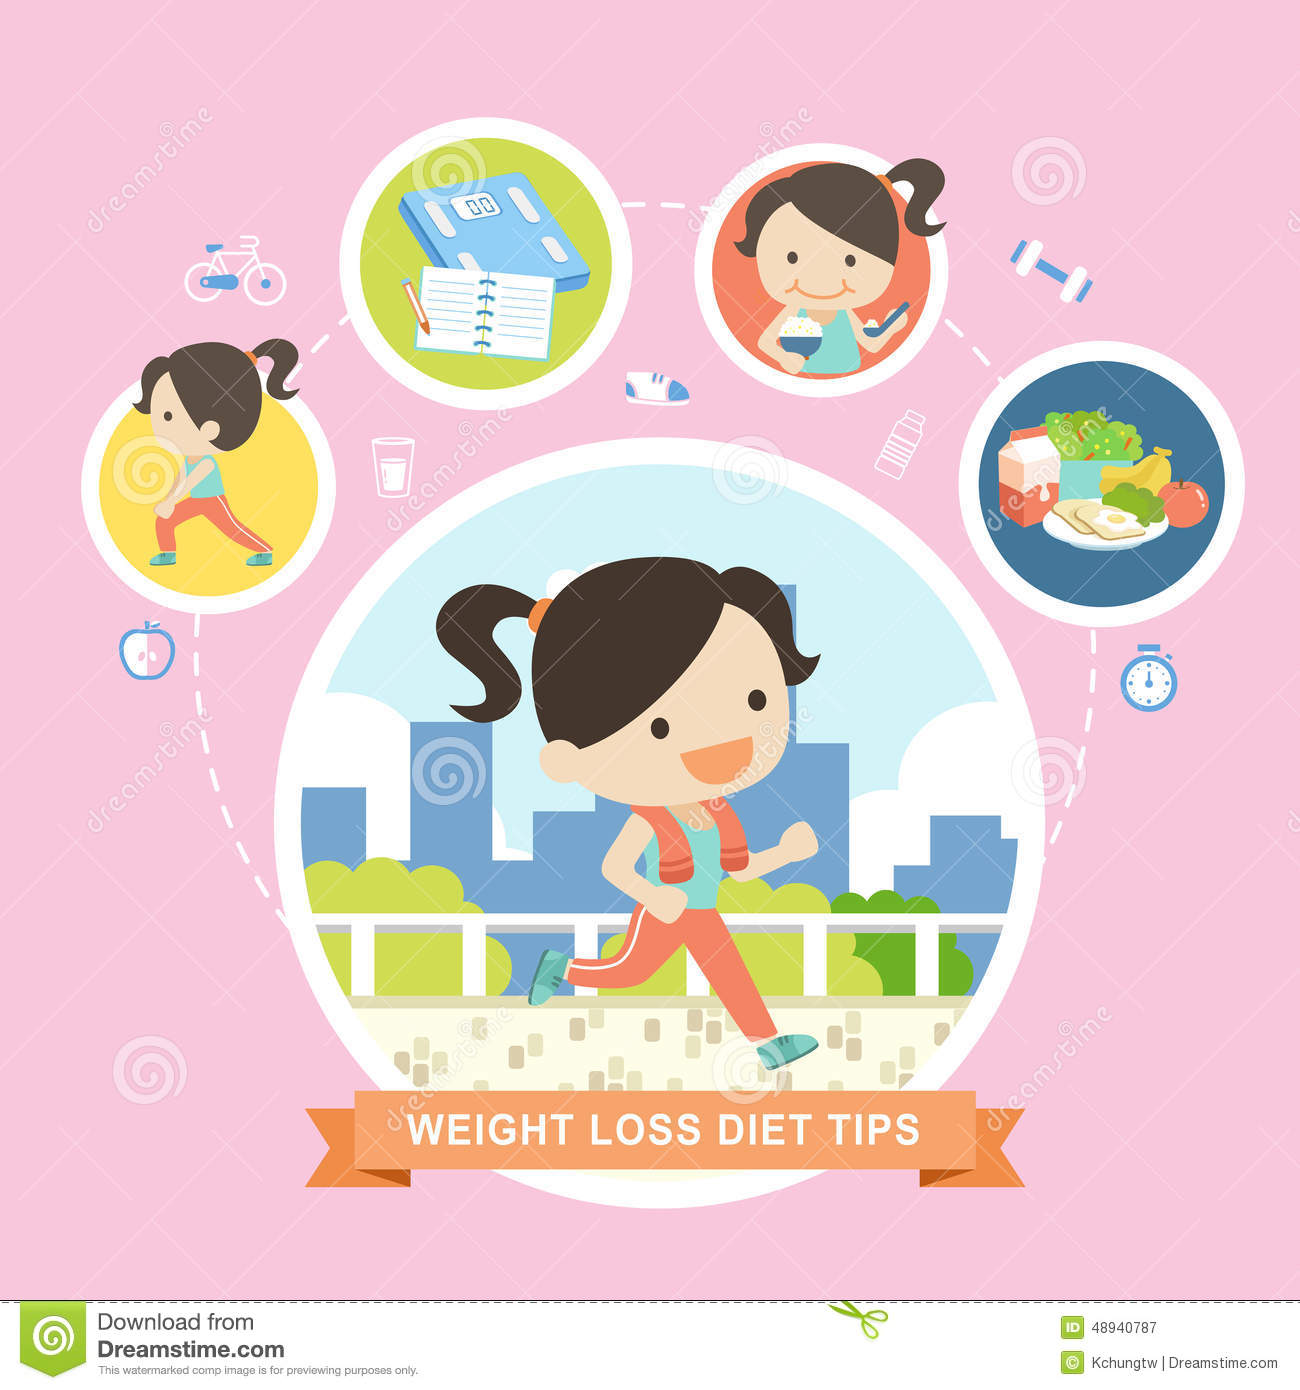 weight loss diet tips in flat design stock vector illustration of